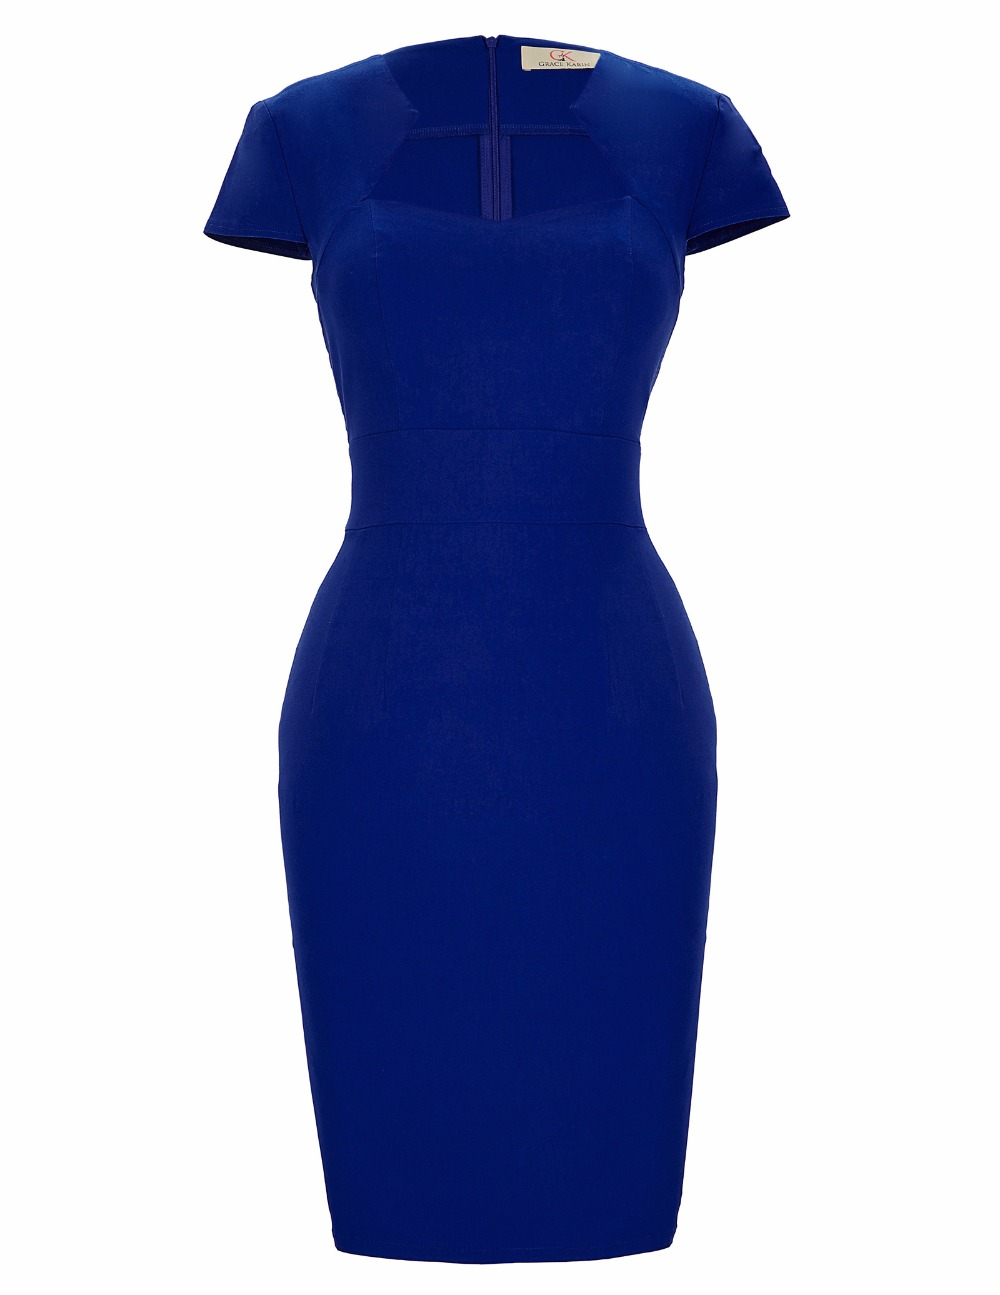 Womens Bodycon Dresses Summer Clothes 2017 Short Sleeve Sexy Club Party dress Vintage Work Wear Black Blue Pencil Office Dresses